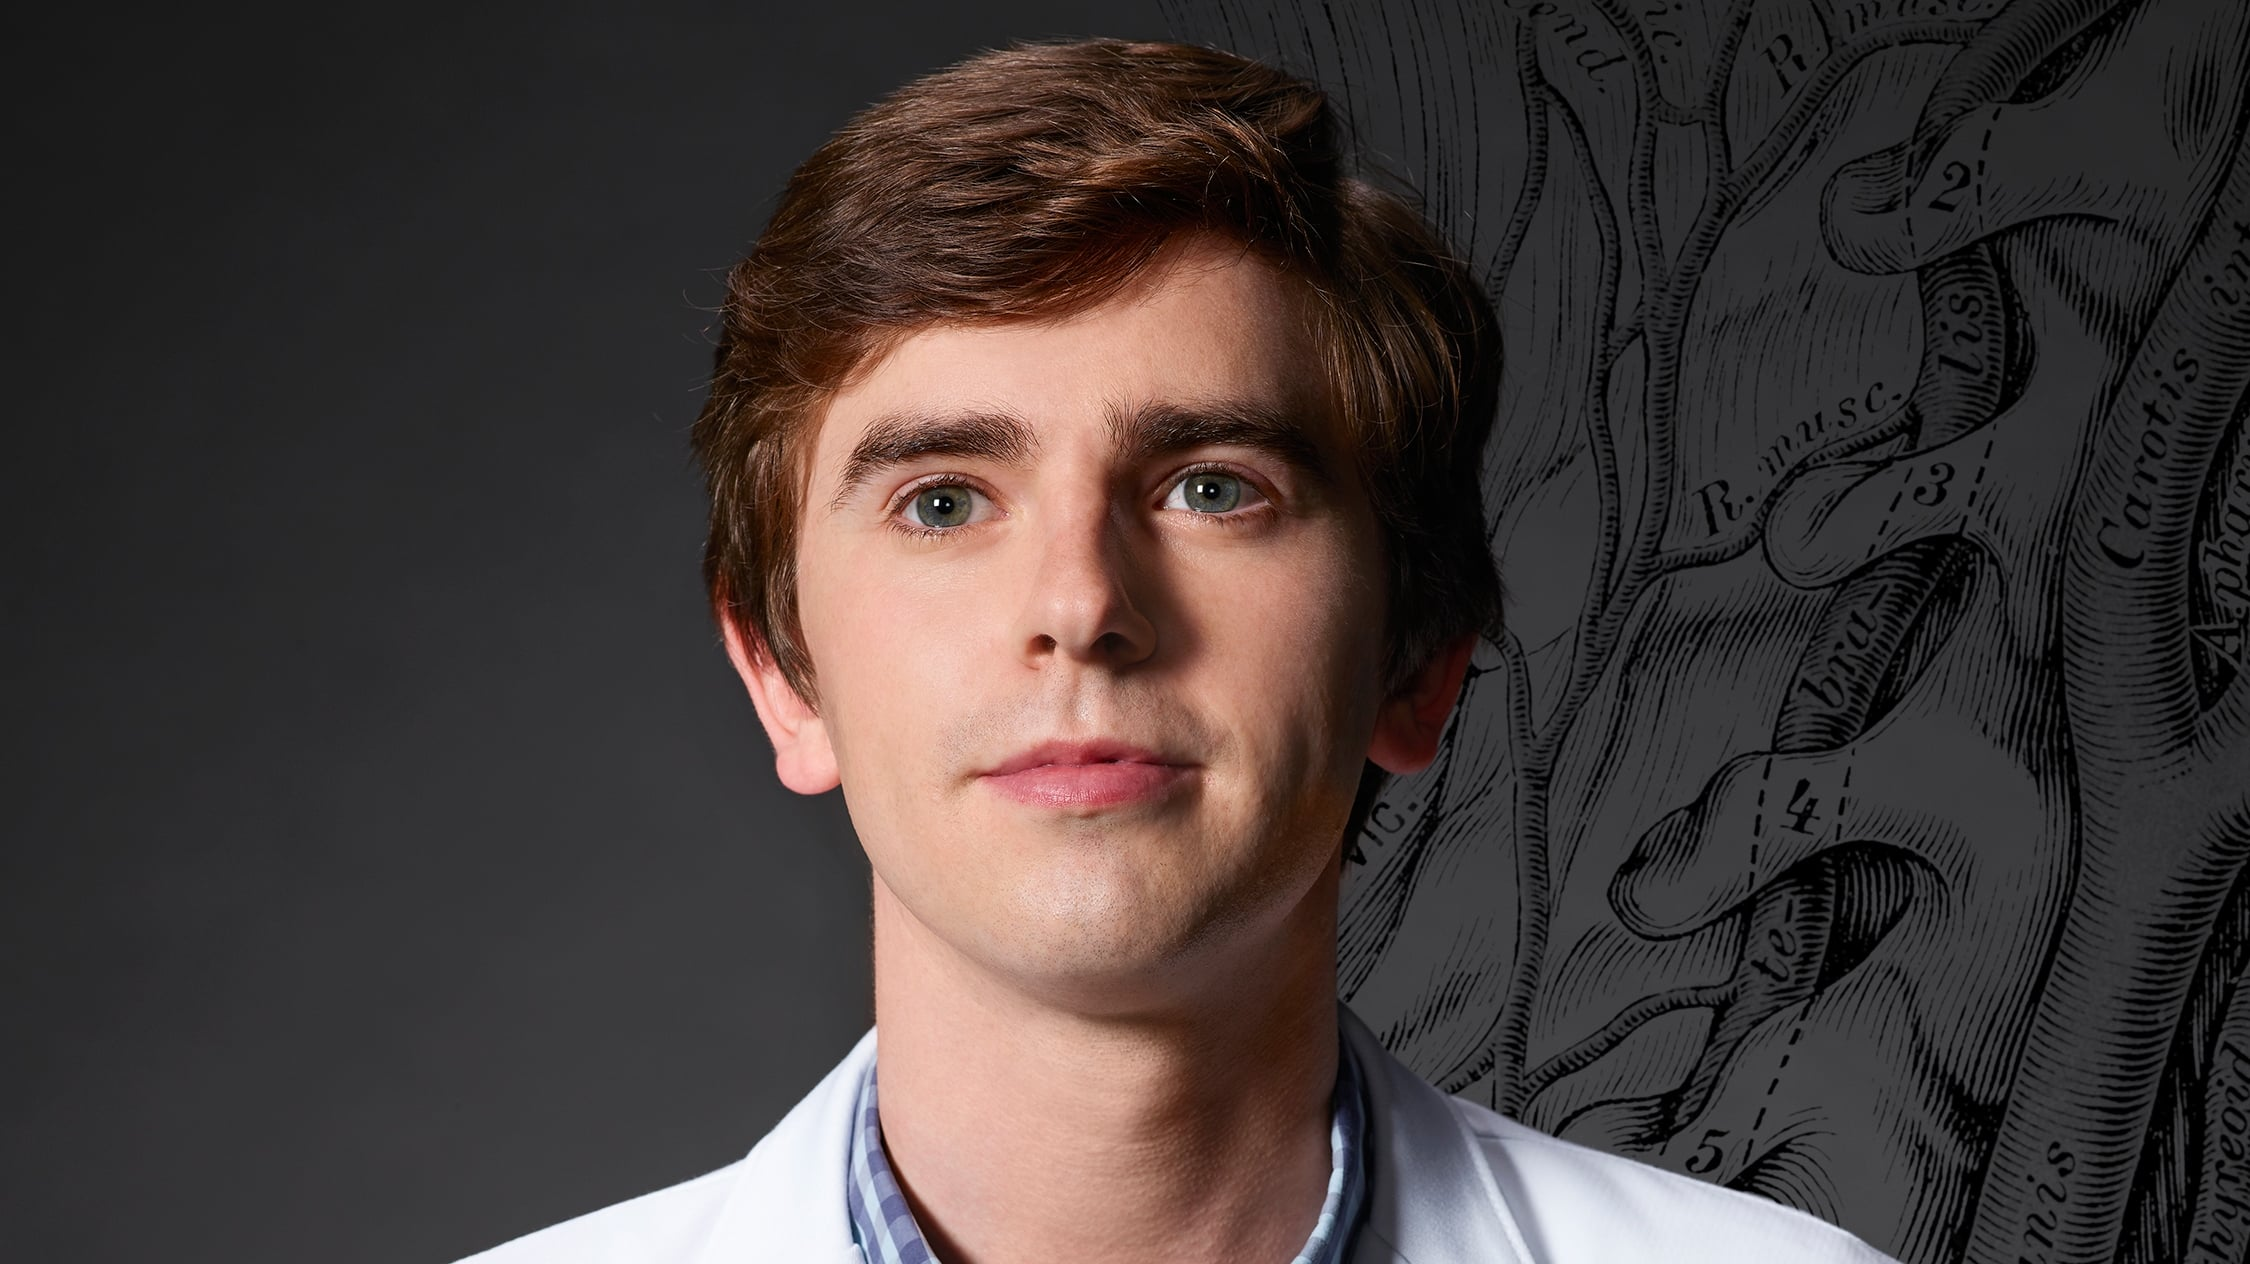 The Good Doctor - Season 2